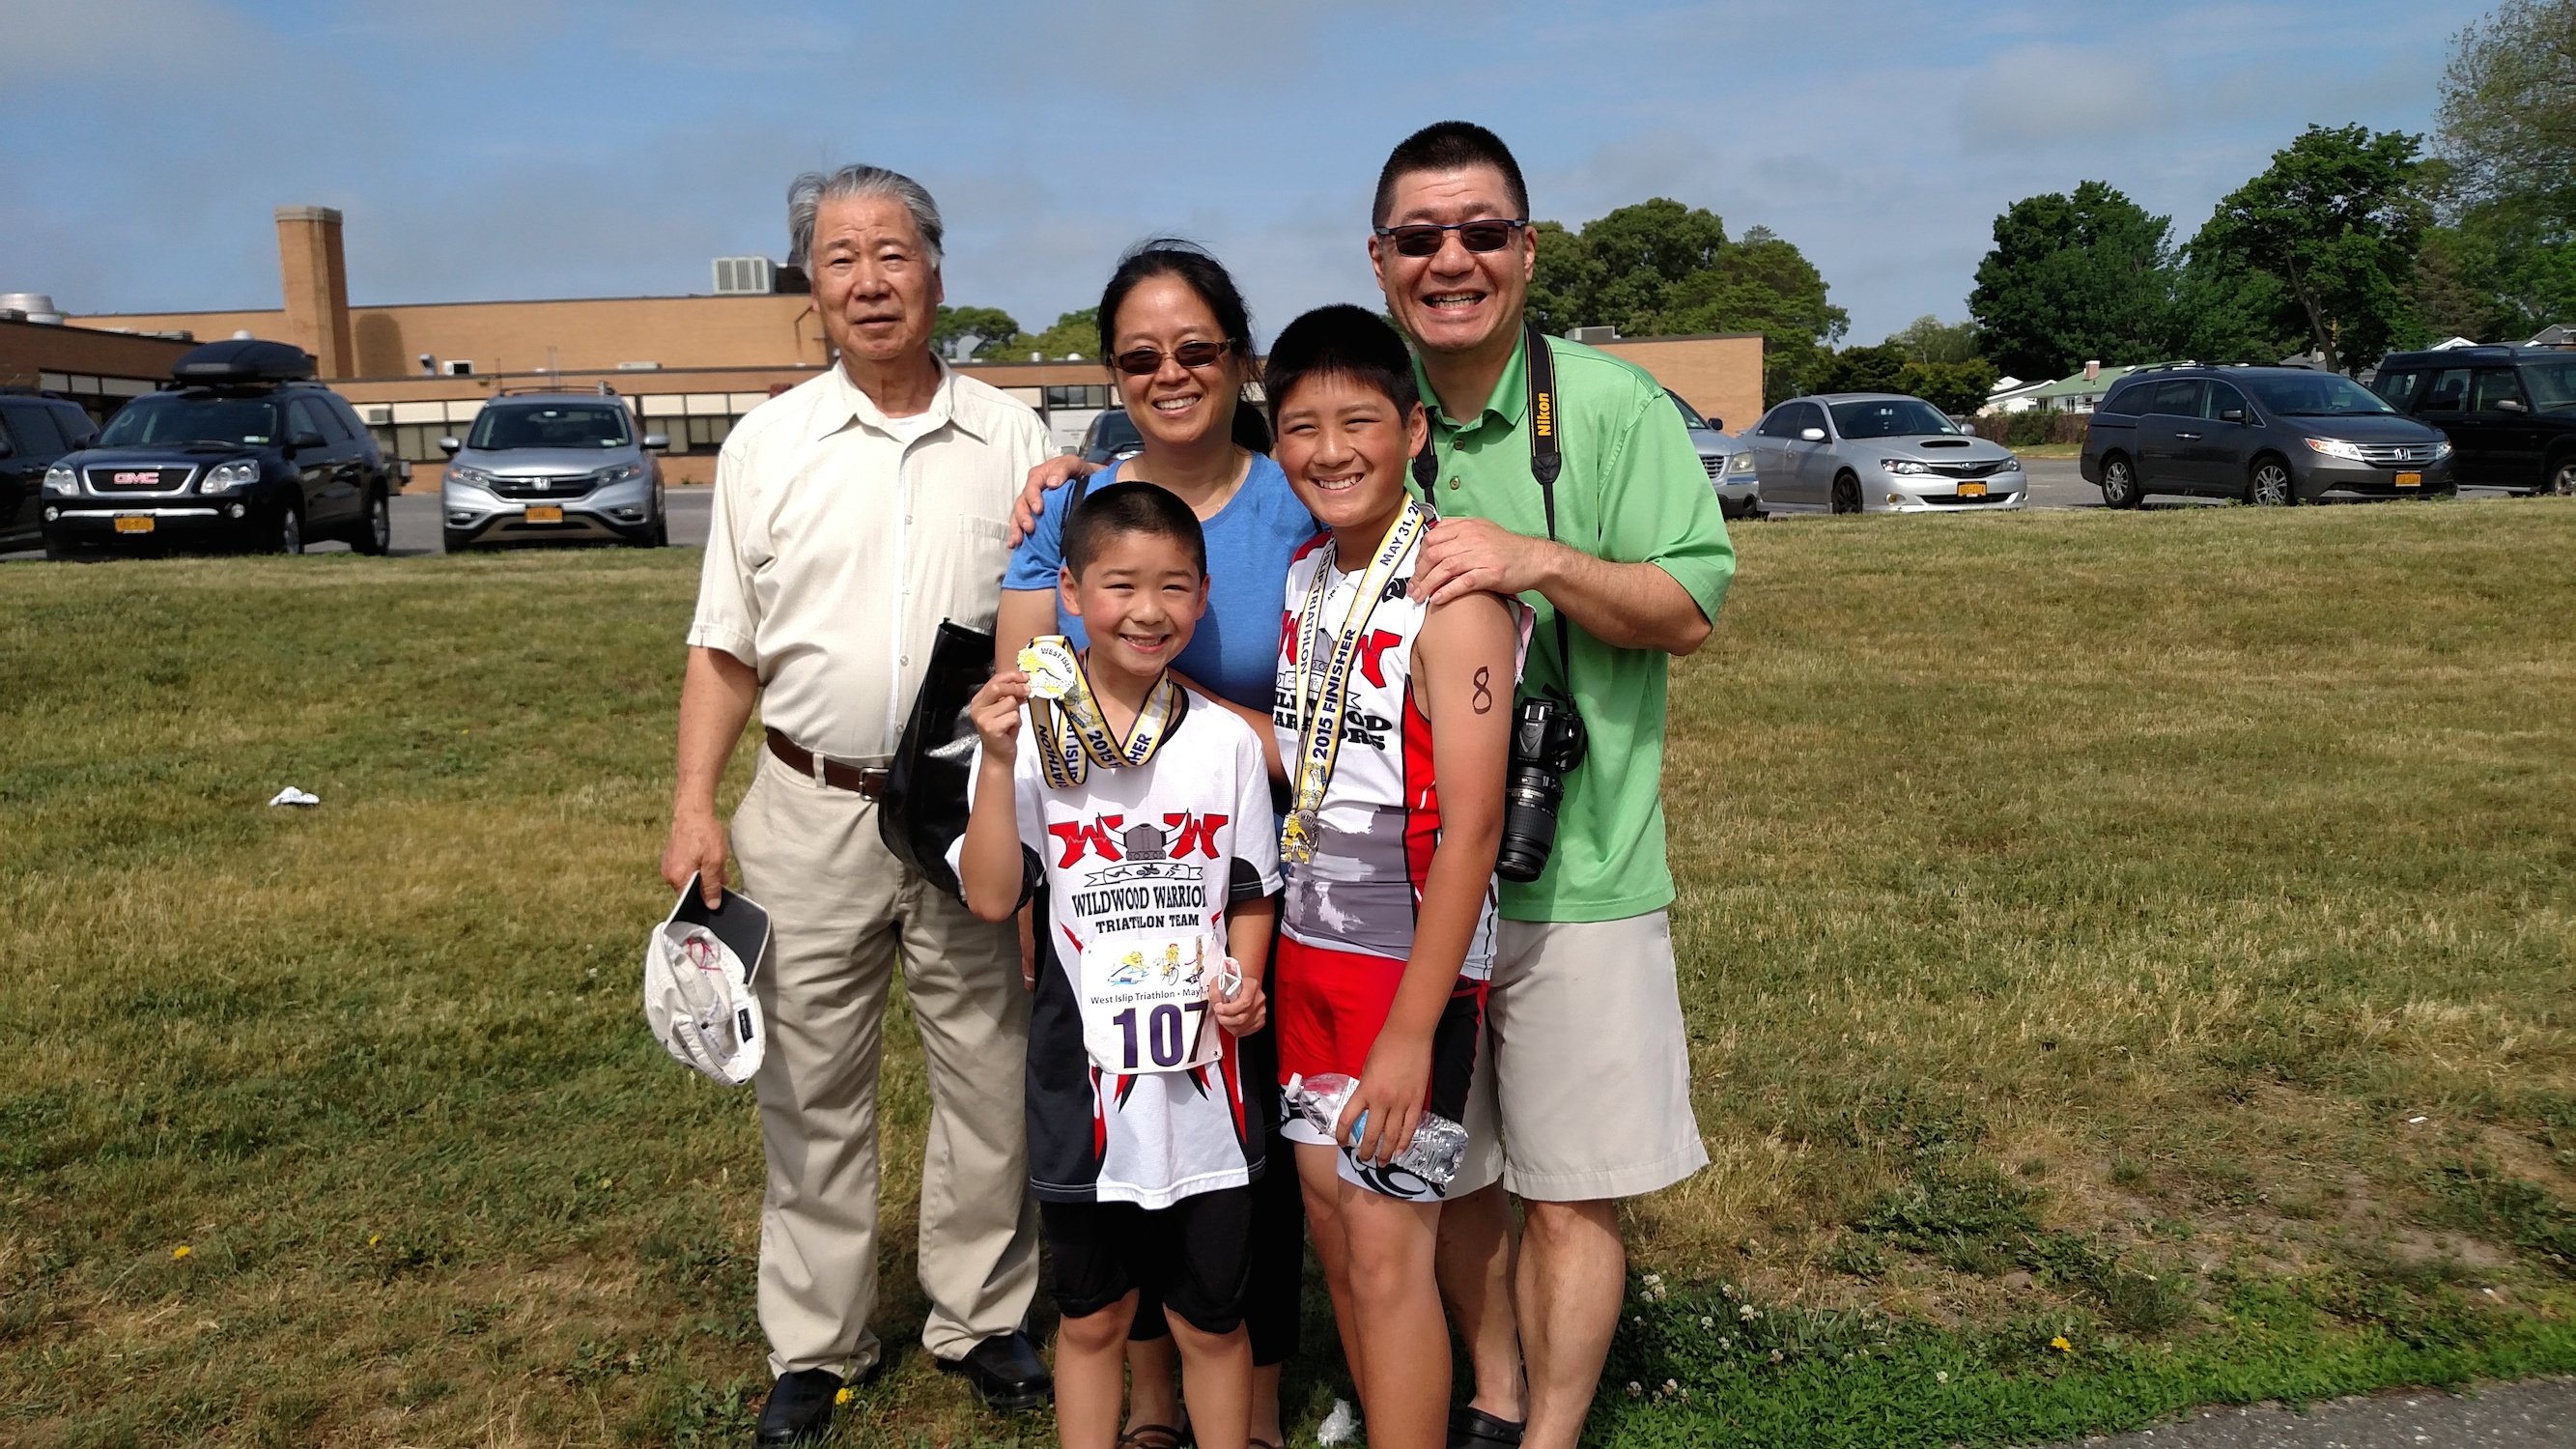 Lam with members of his family. Both of his sons run track and his wife is training for an iron man.